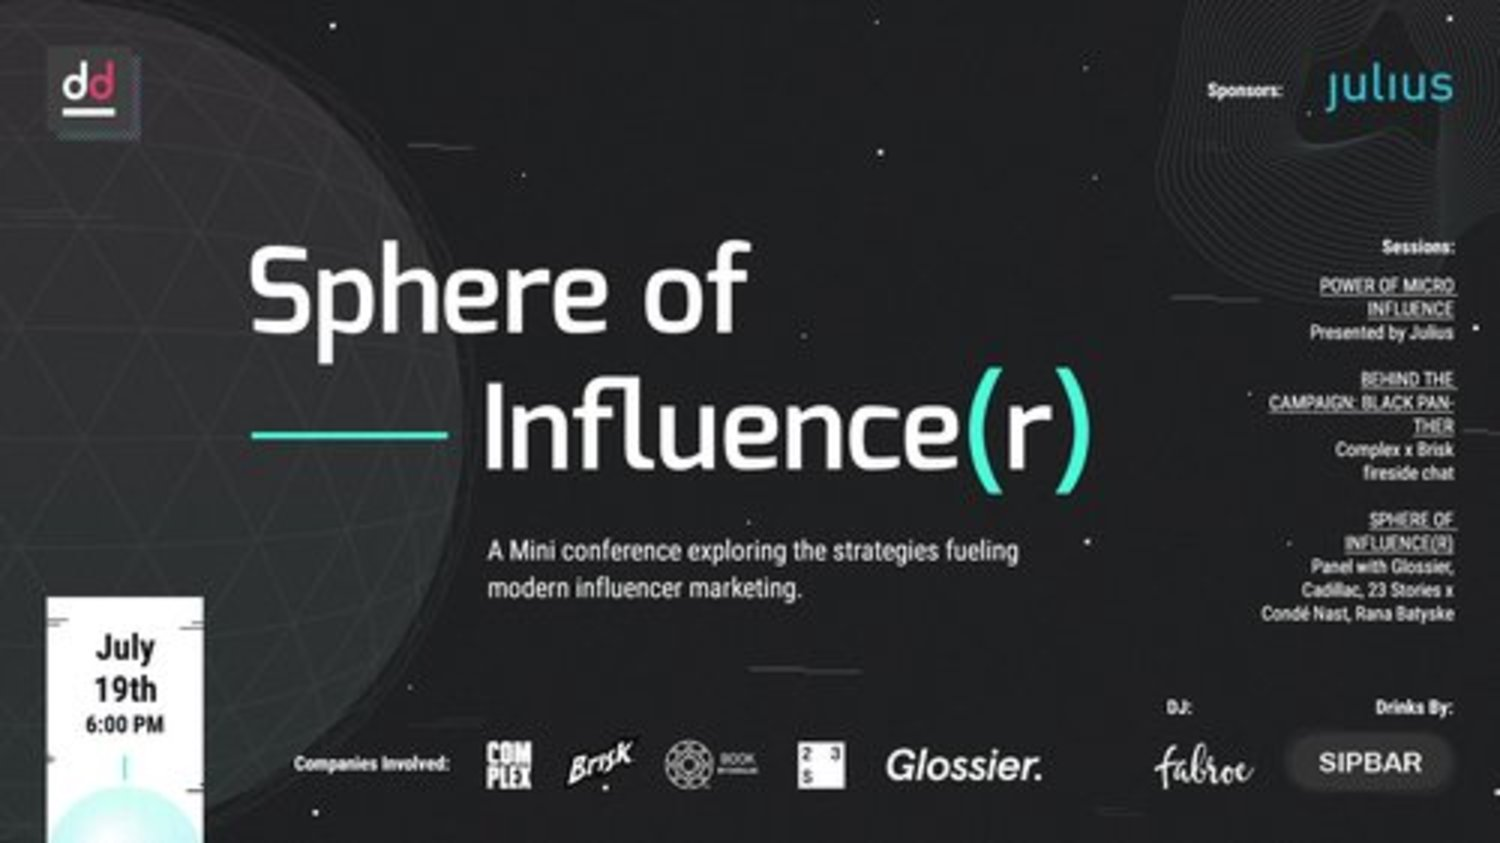 Sphere of influence flyer 5